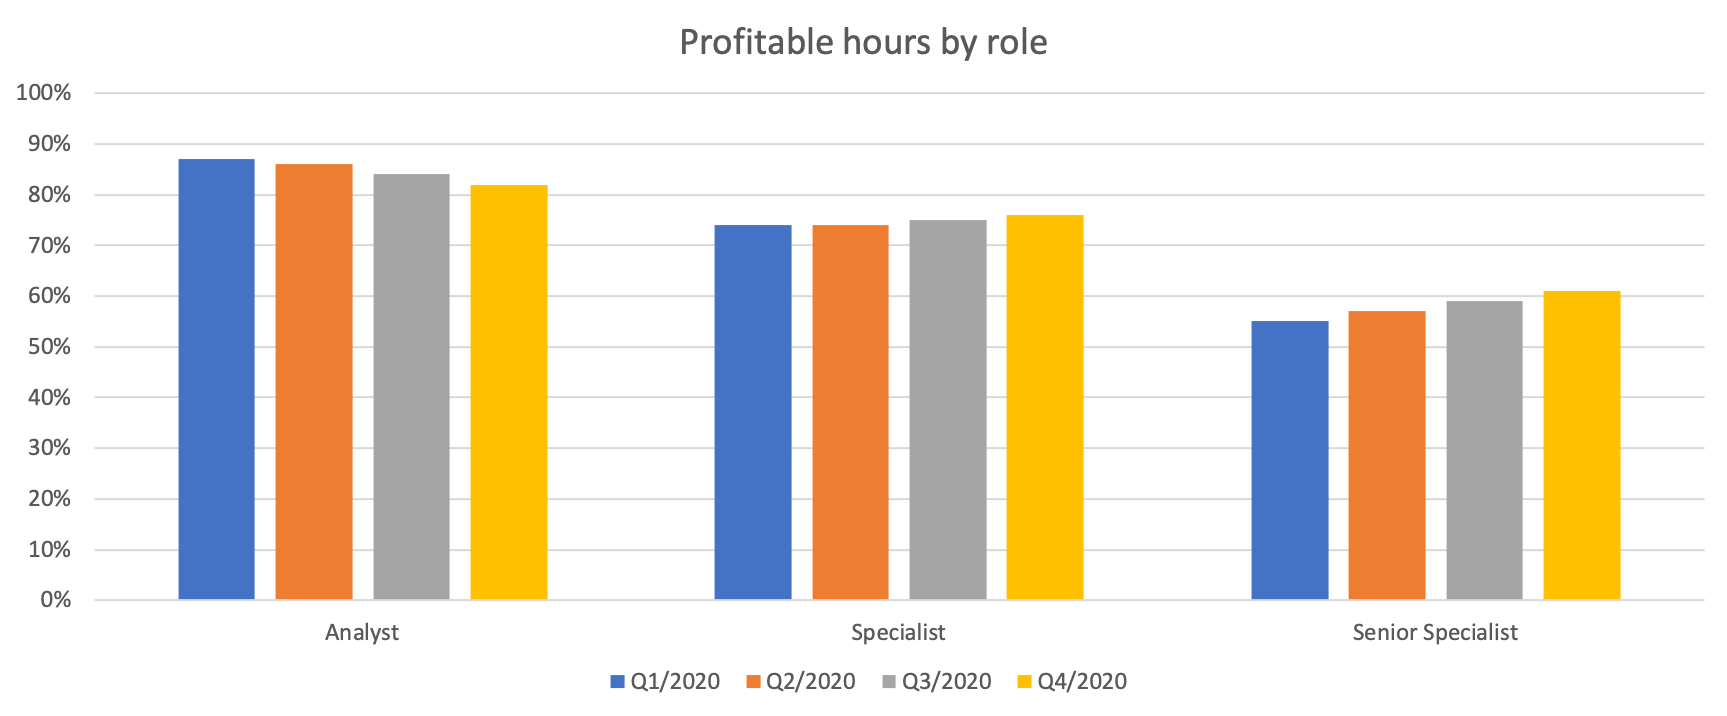 profitable hours by roles in a laboratory